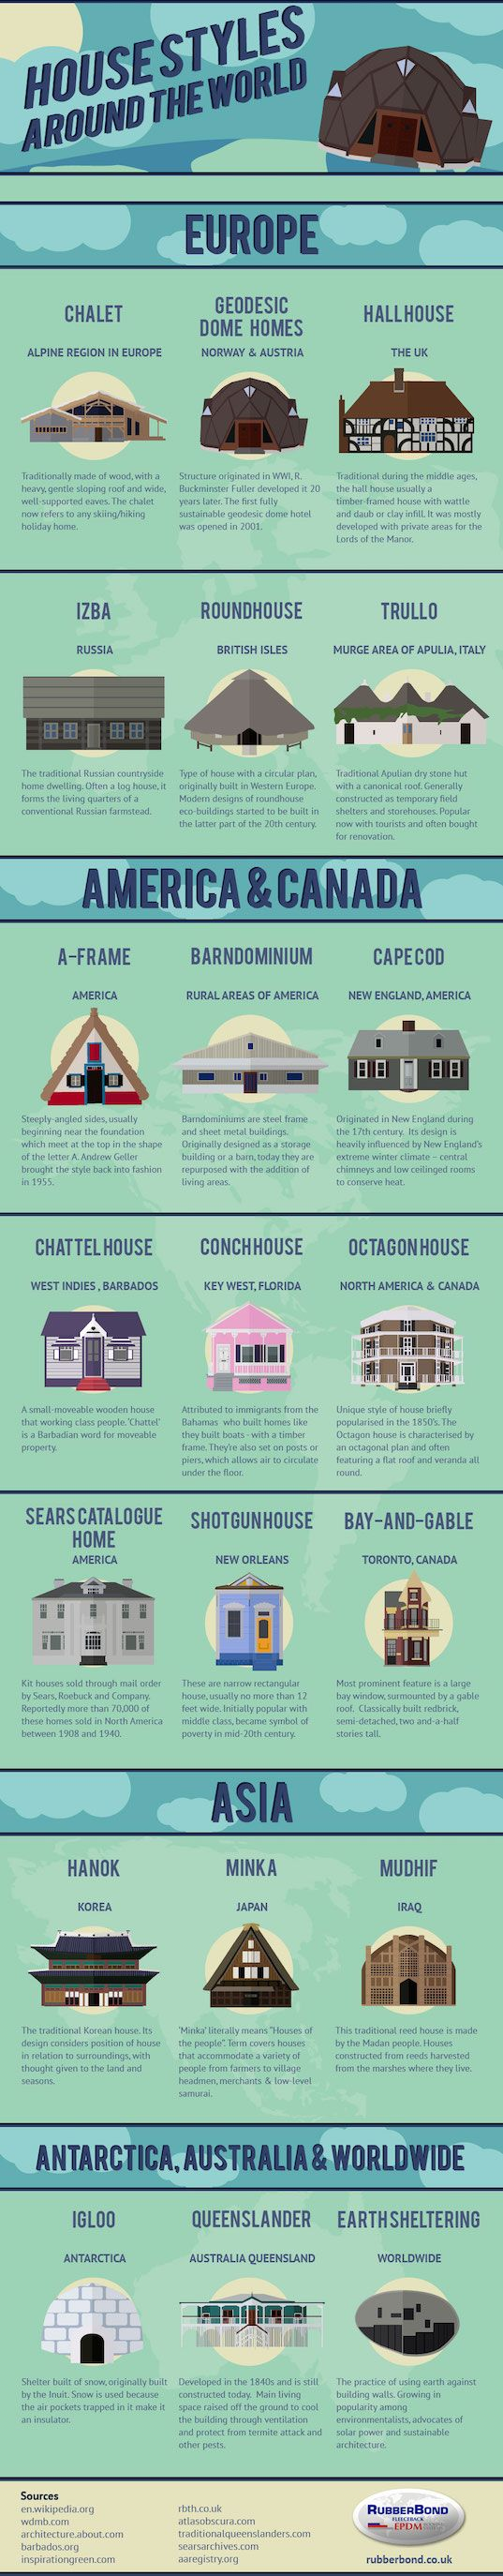 Infographic - 21 Interesting House Styles From Around The World